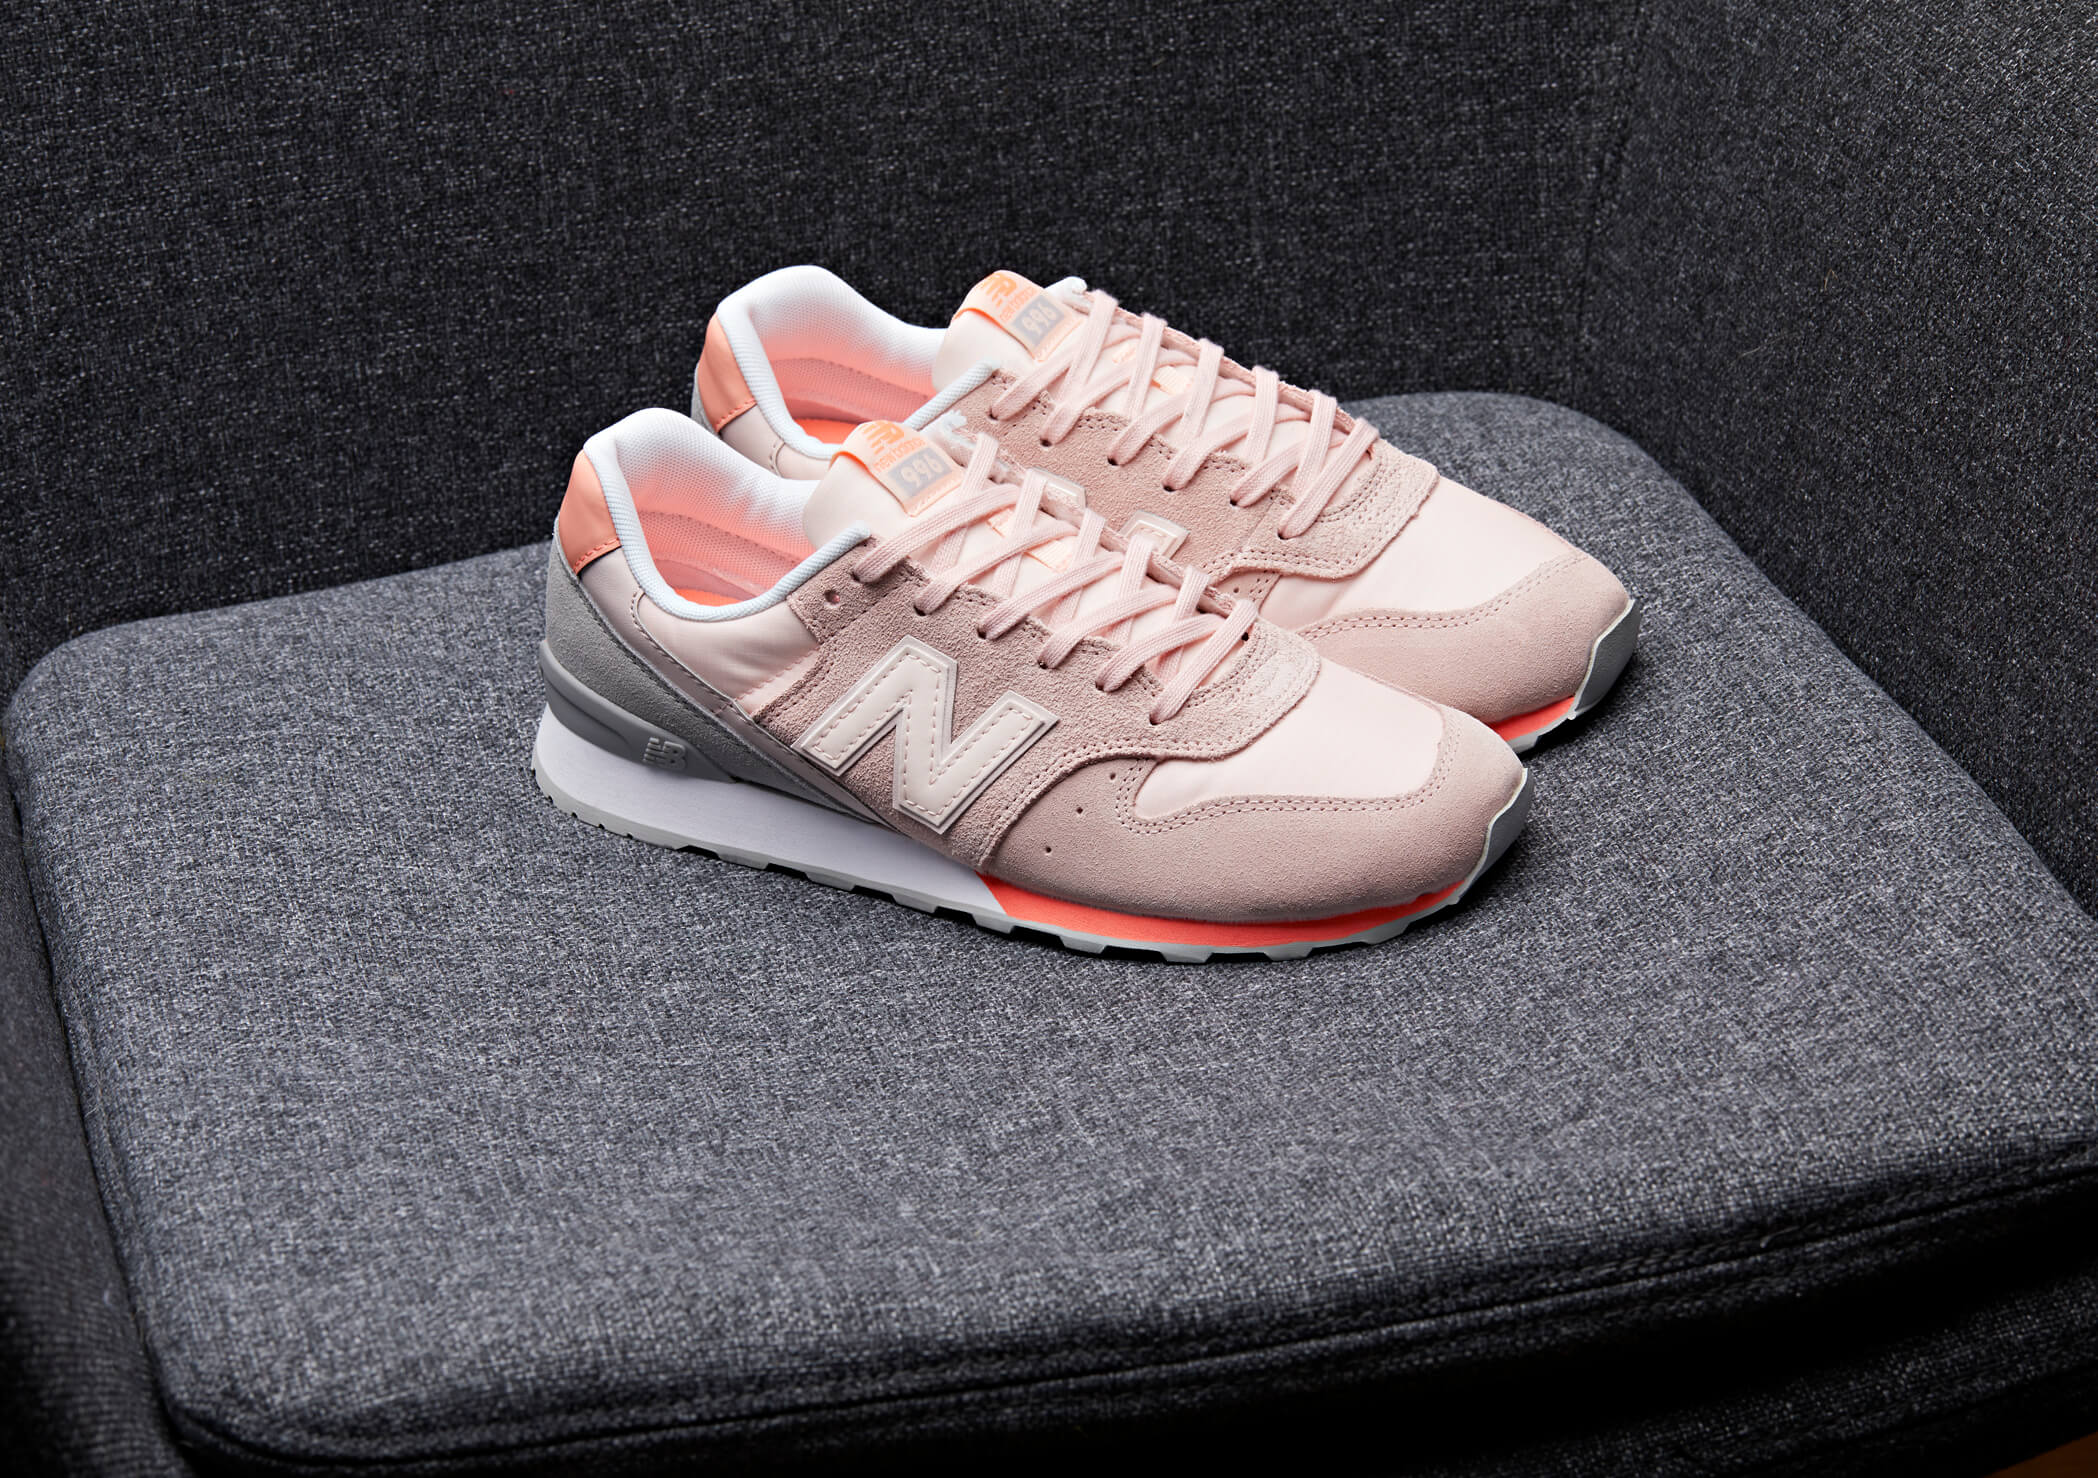 Creme_creative_NewBalance_Test_Shoot_05.jpg